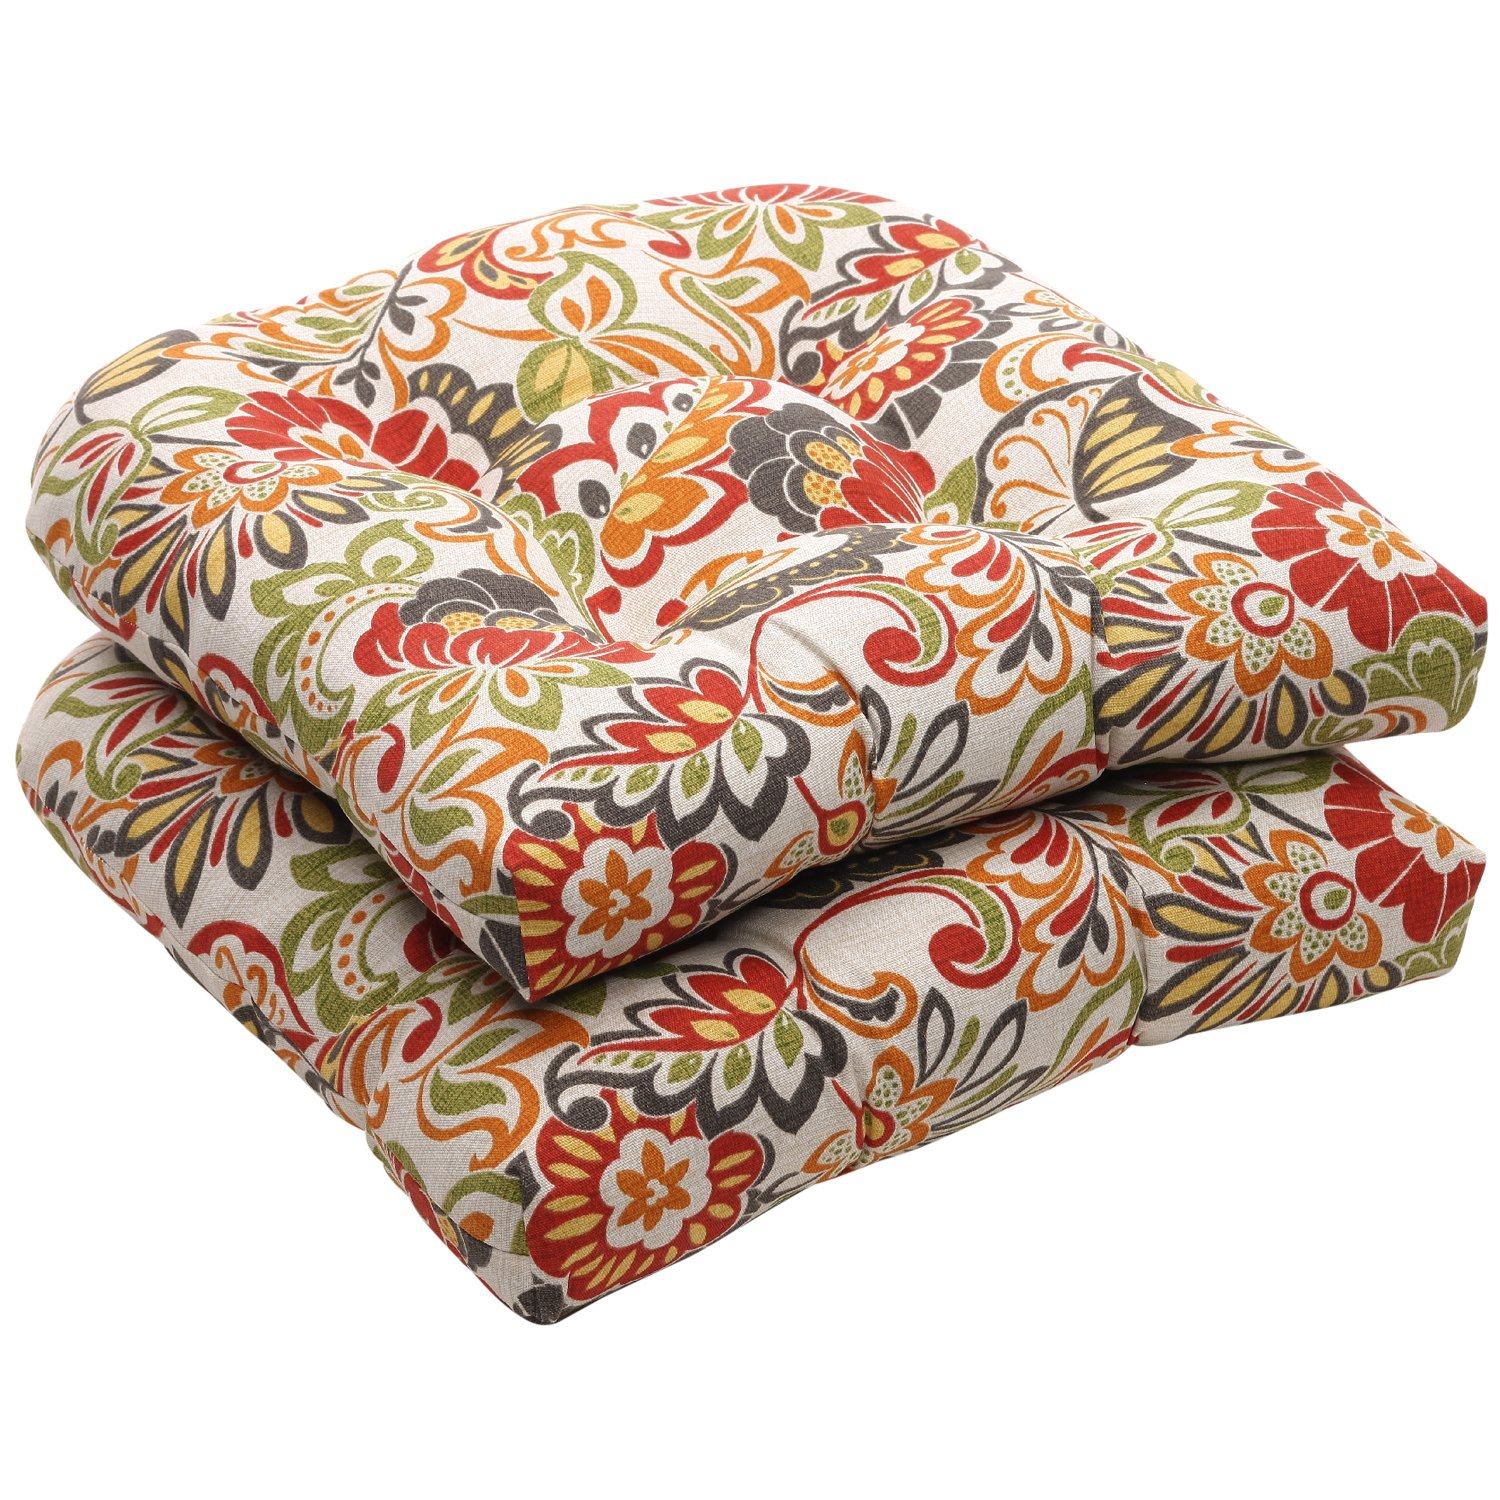 Amazon.com: Pillow Perfect Indoor/Outdoor Multicolored Modern Floral Wicker  Seat Cushions, 2 Pack: Home U0026 Kitchen